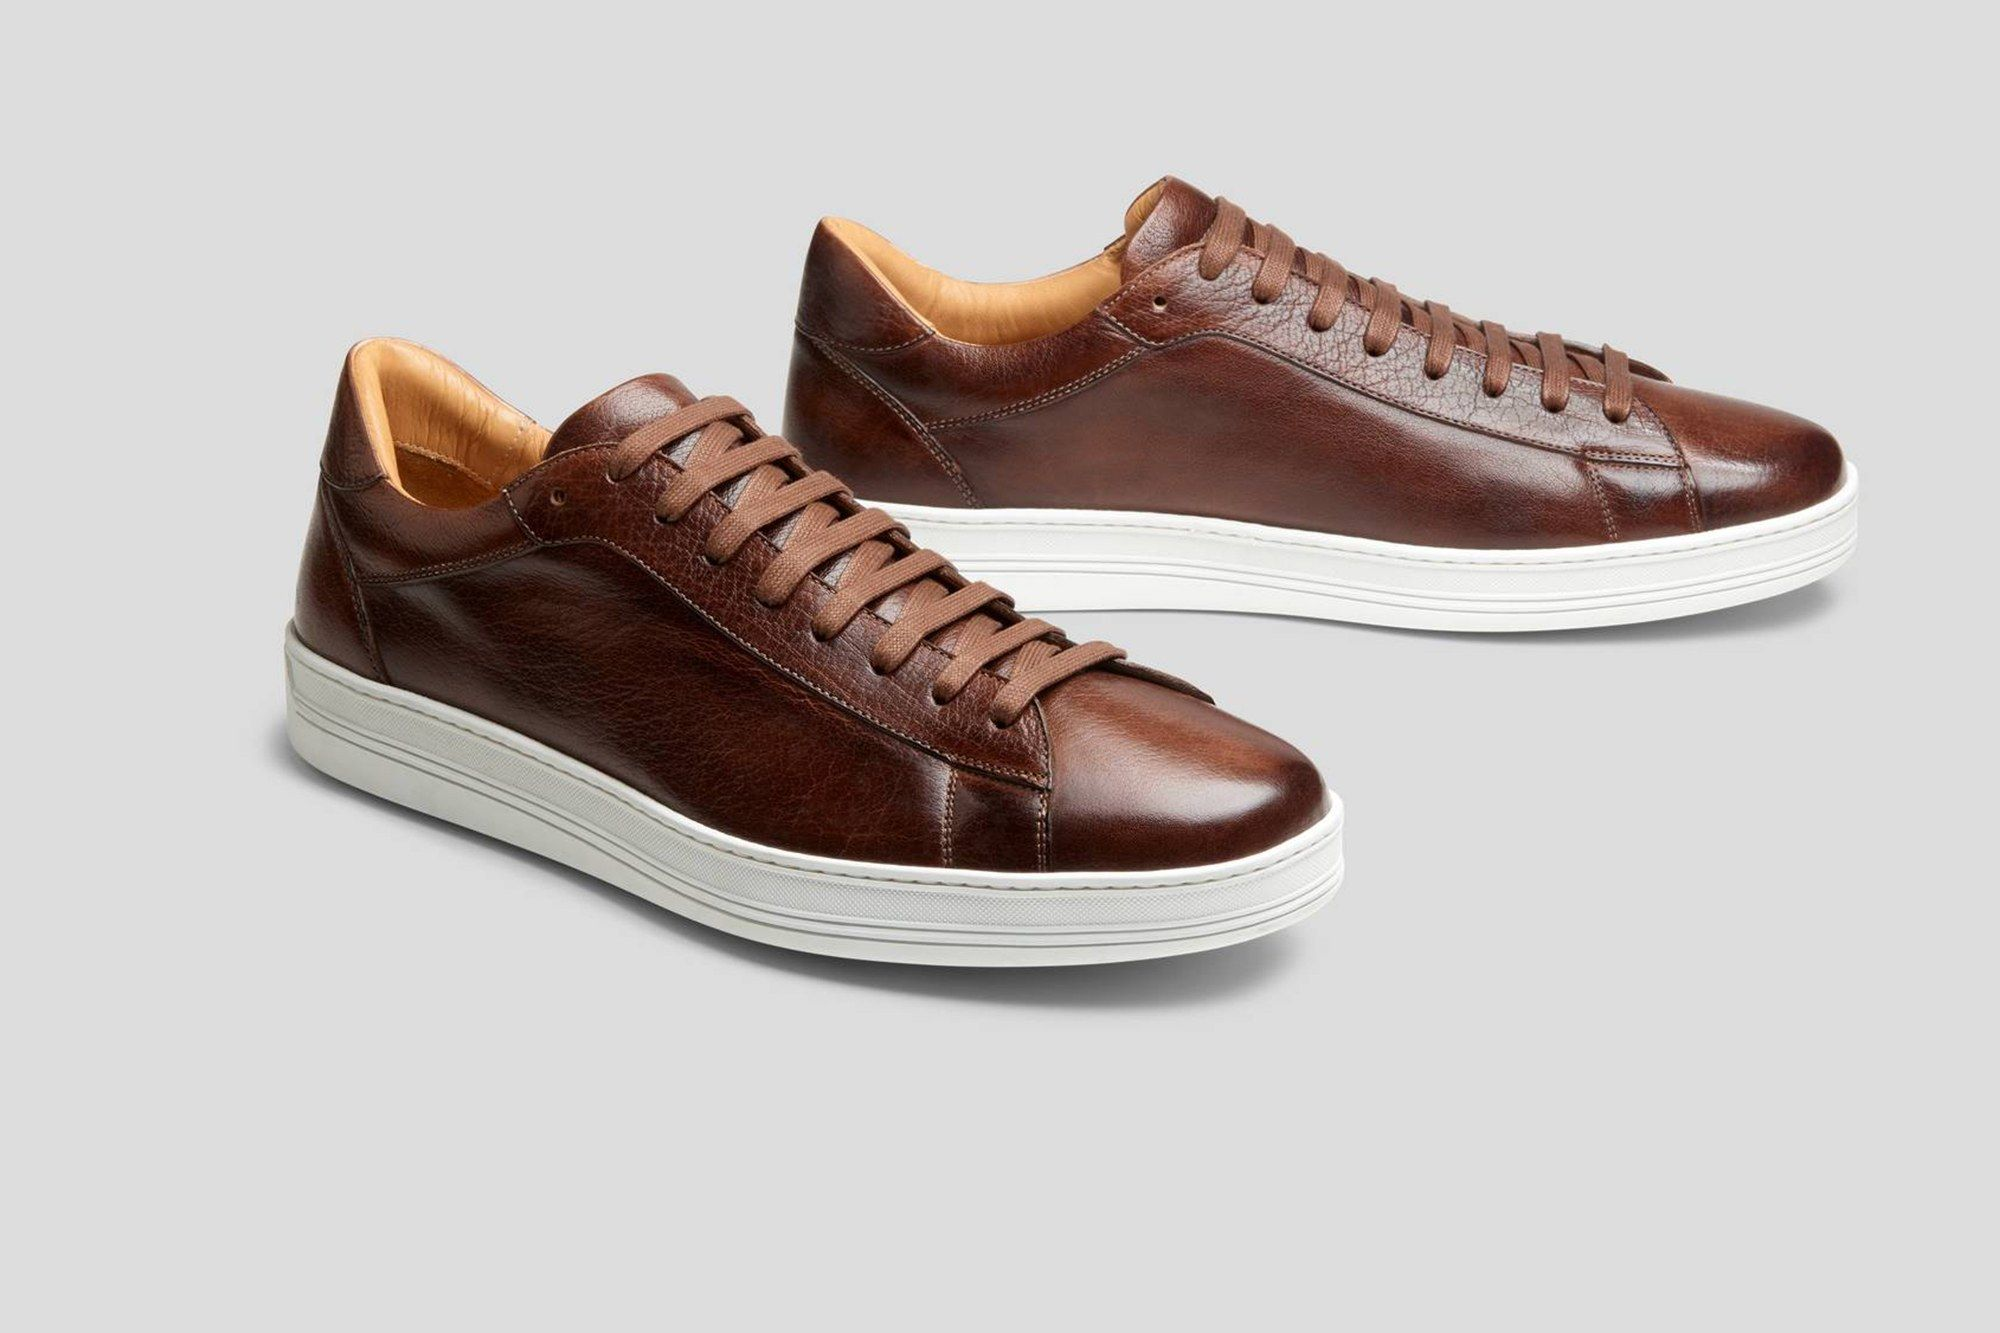 2ff875a3fda5b 10 Sneakers You Can Get Away with Wearing to the Office in 2019 ...